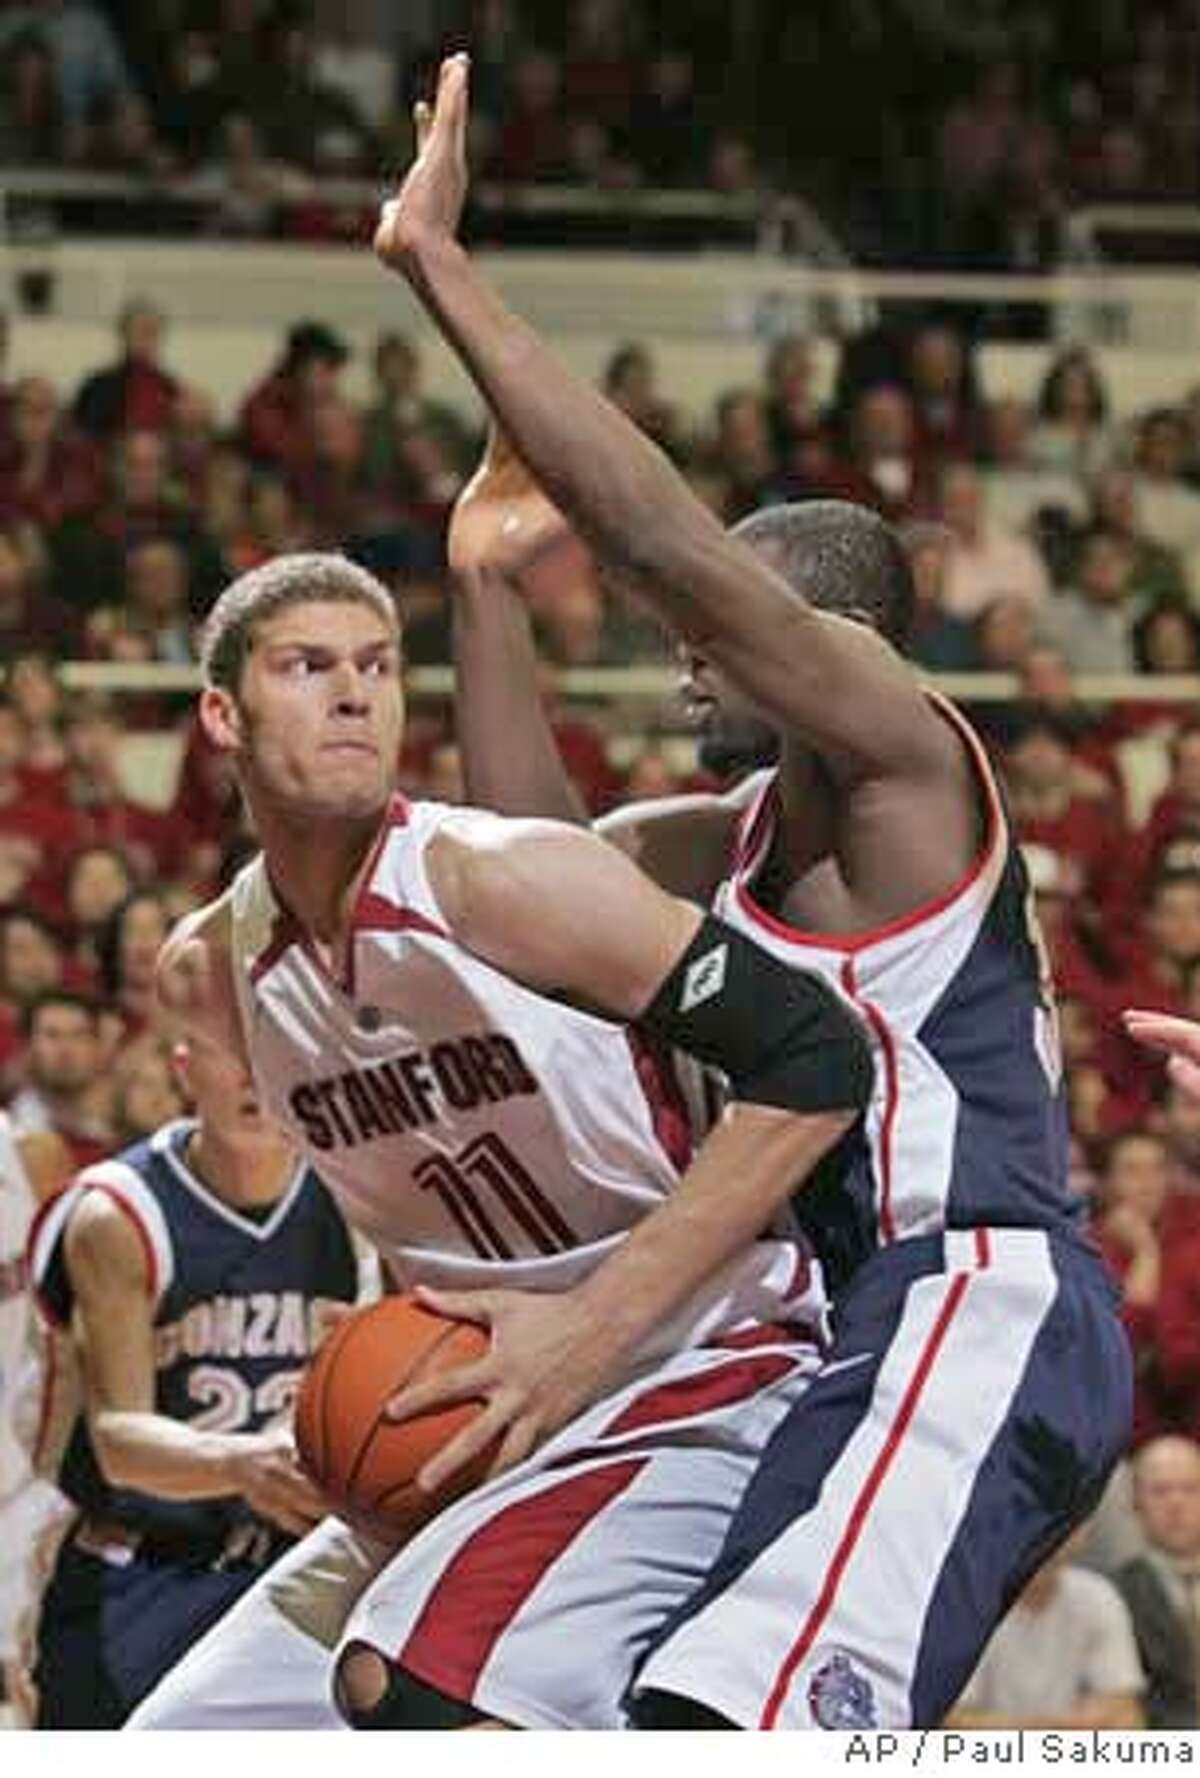 Stanford forward Brook Lopez, left, is closely guarded by Gonzaga forward Abdullahi Kuso during the second half of a basketball game in Stanford, Calif., Wednesday, Jan. 31, 2007. (AP Photo/Paul Sakuma)